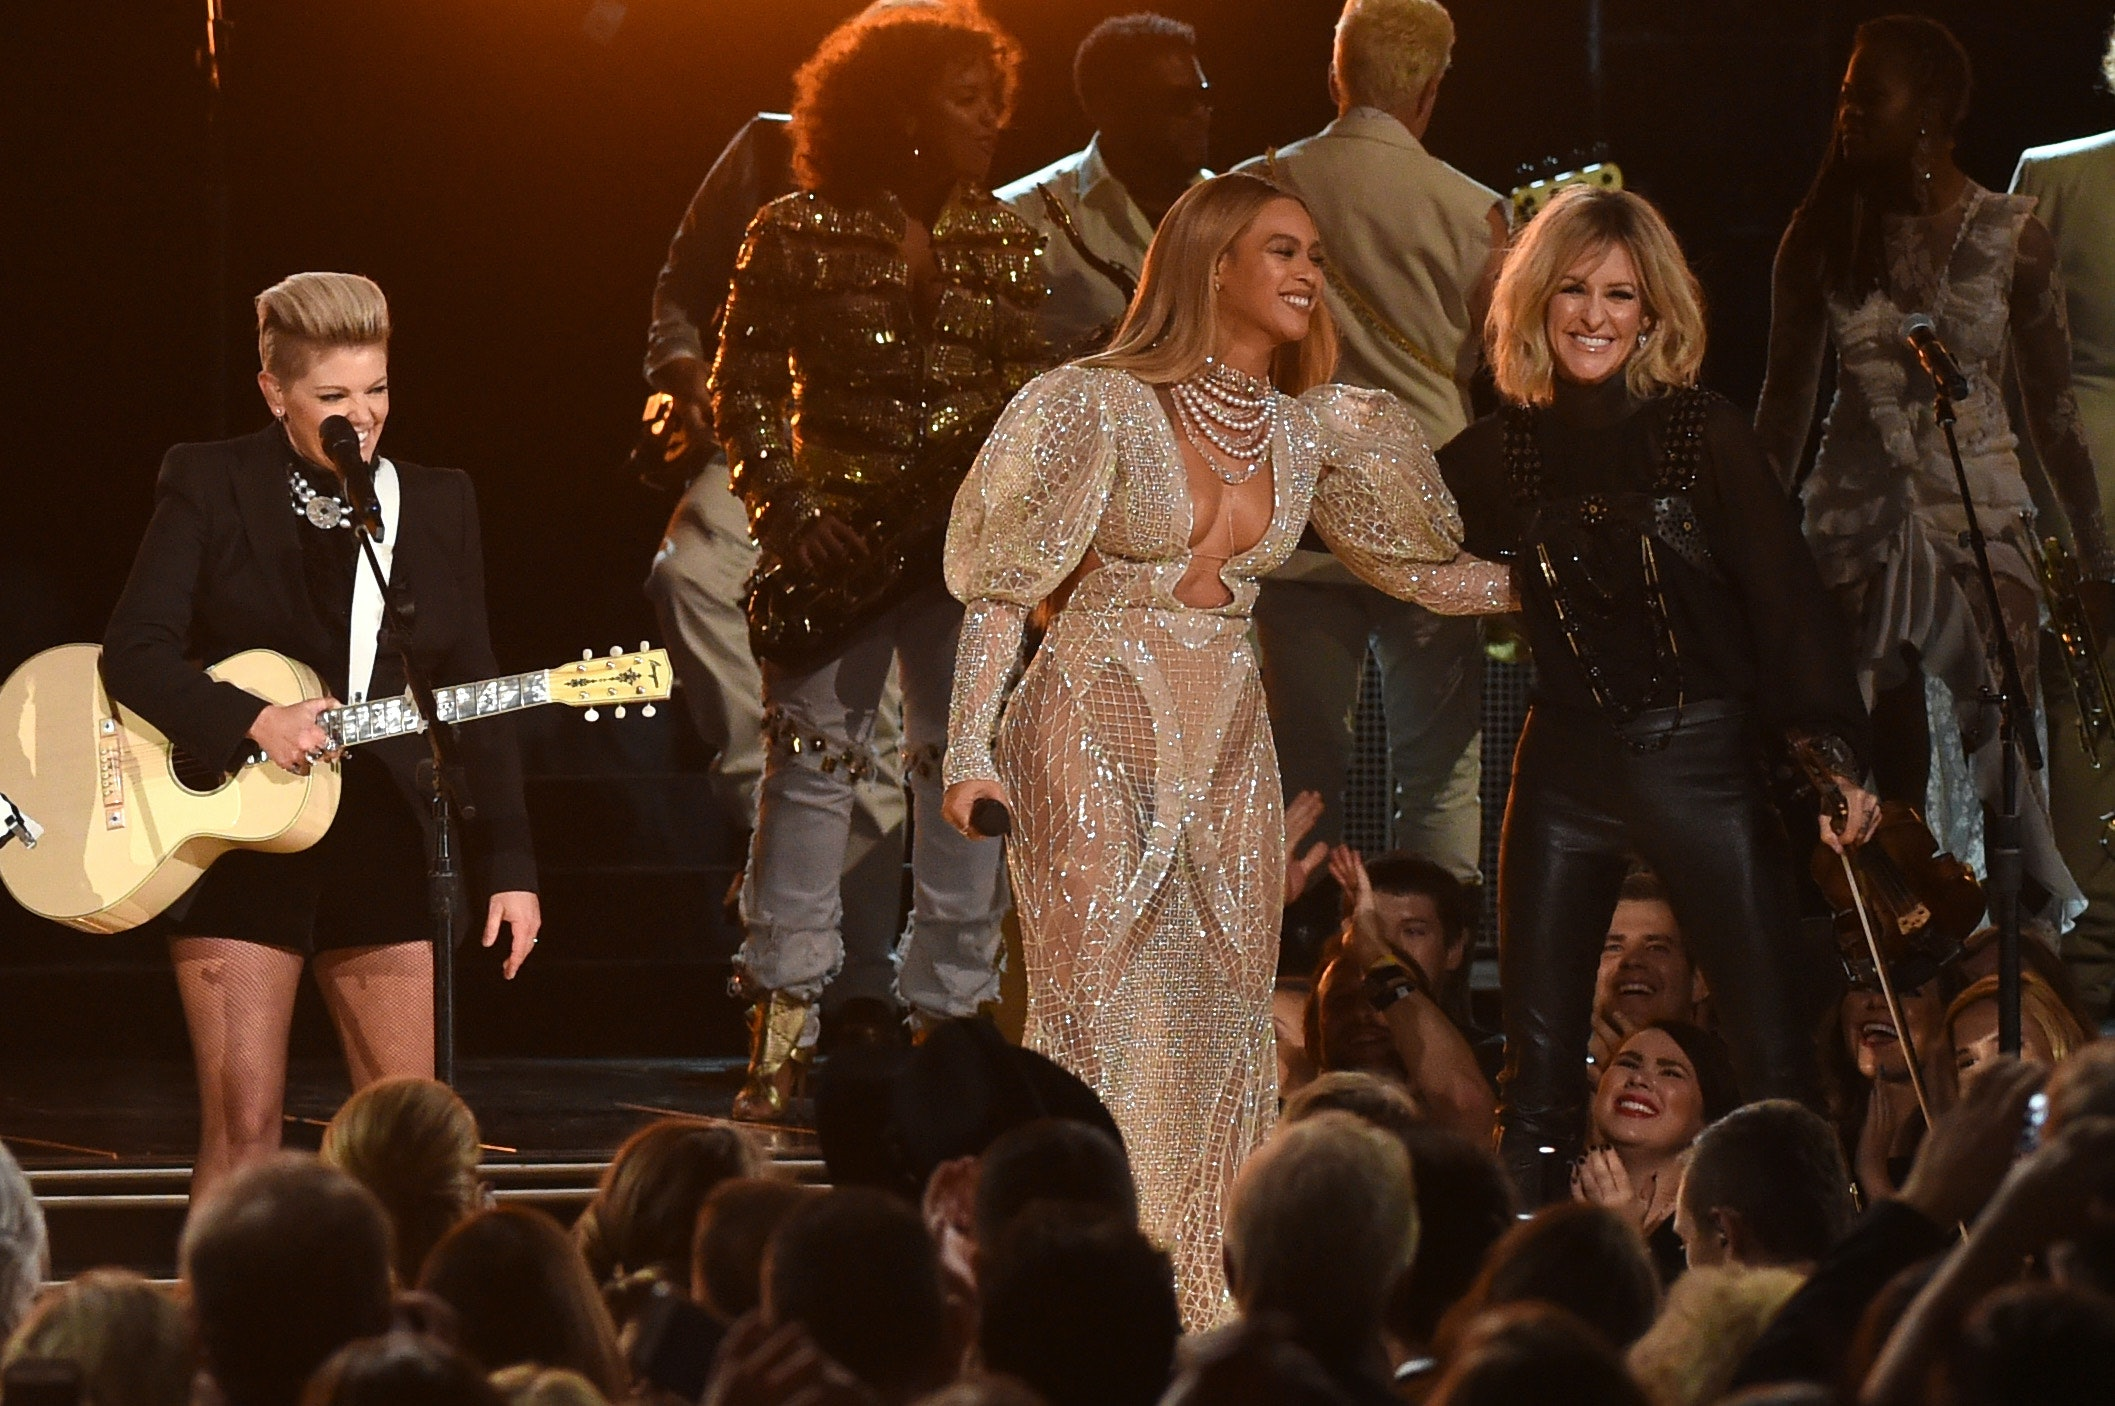 Watch Beyonce's Stunning Performance at the Grammys